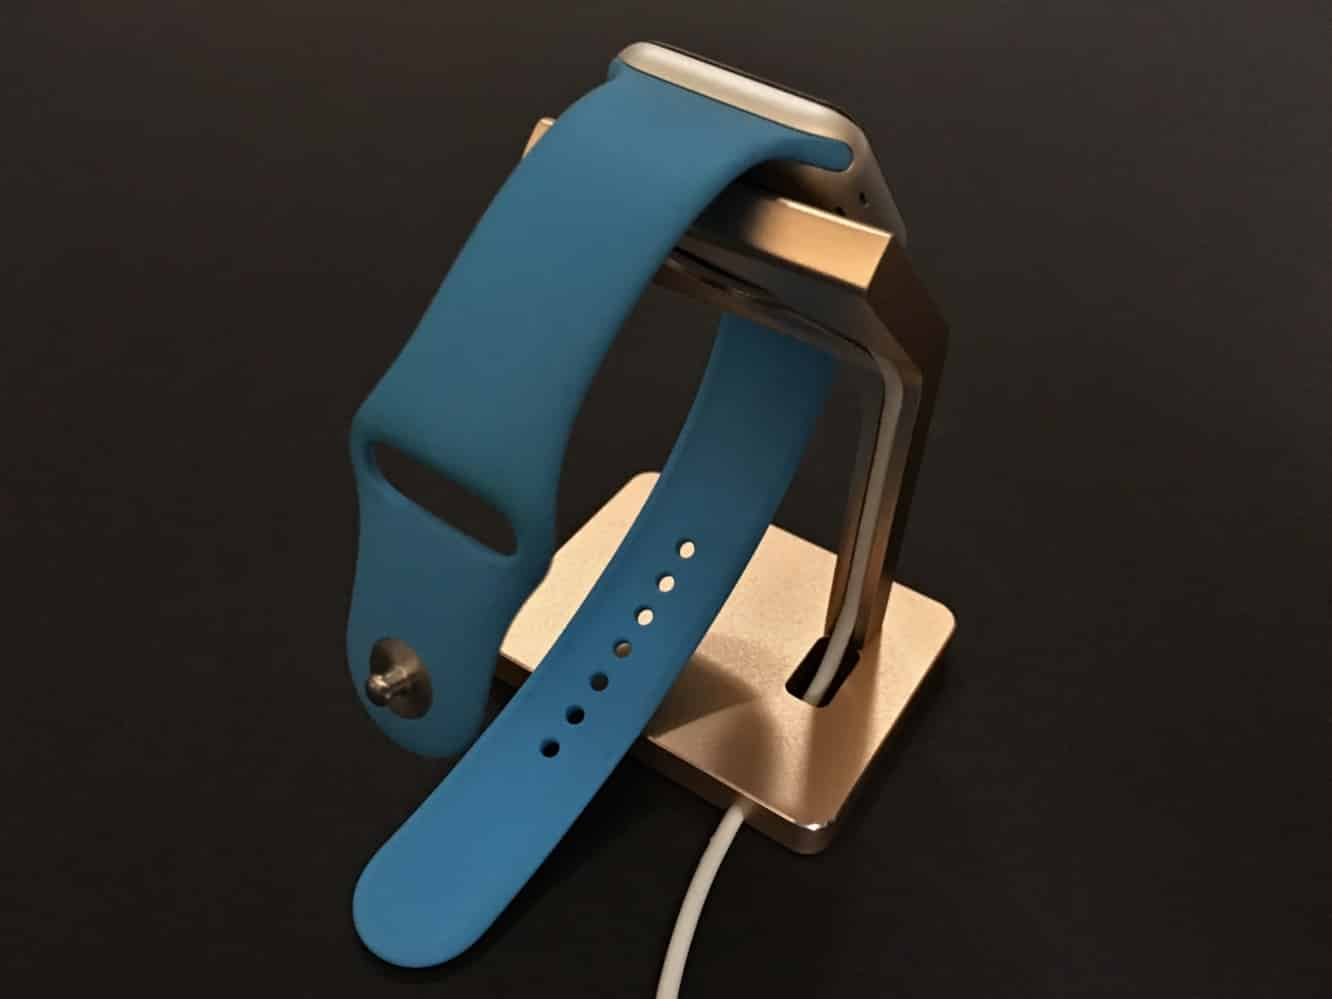 Review: Satechi Aluminum Mobile Dock + Aluminum Watch Stand